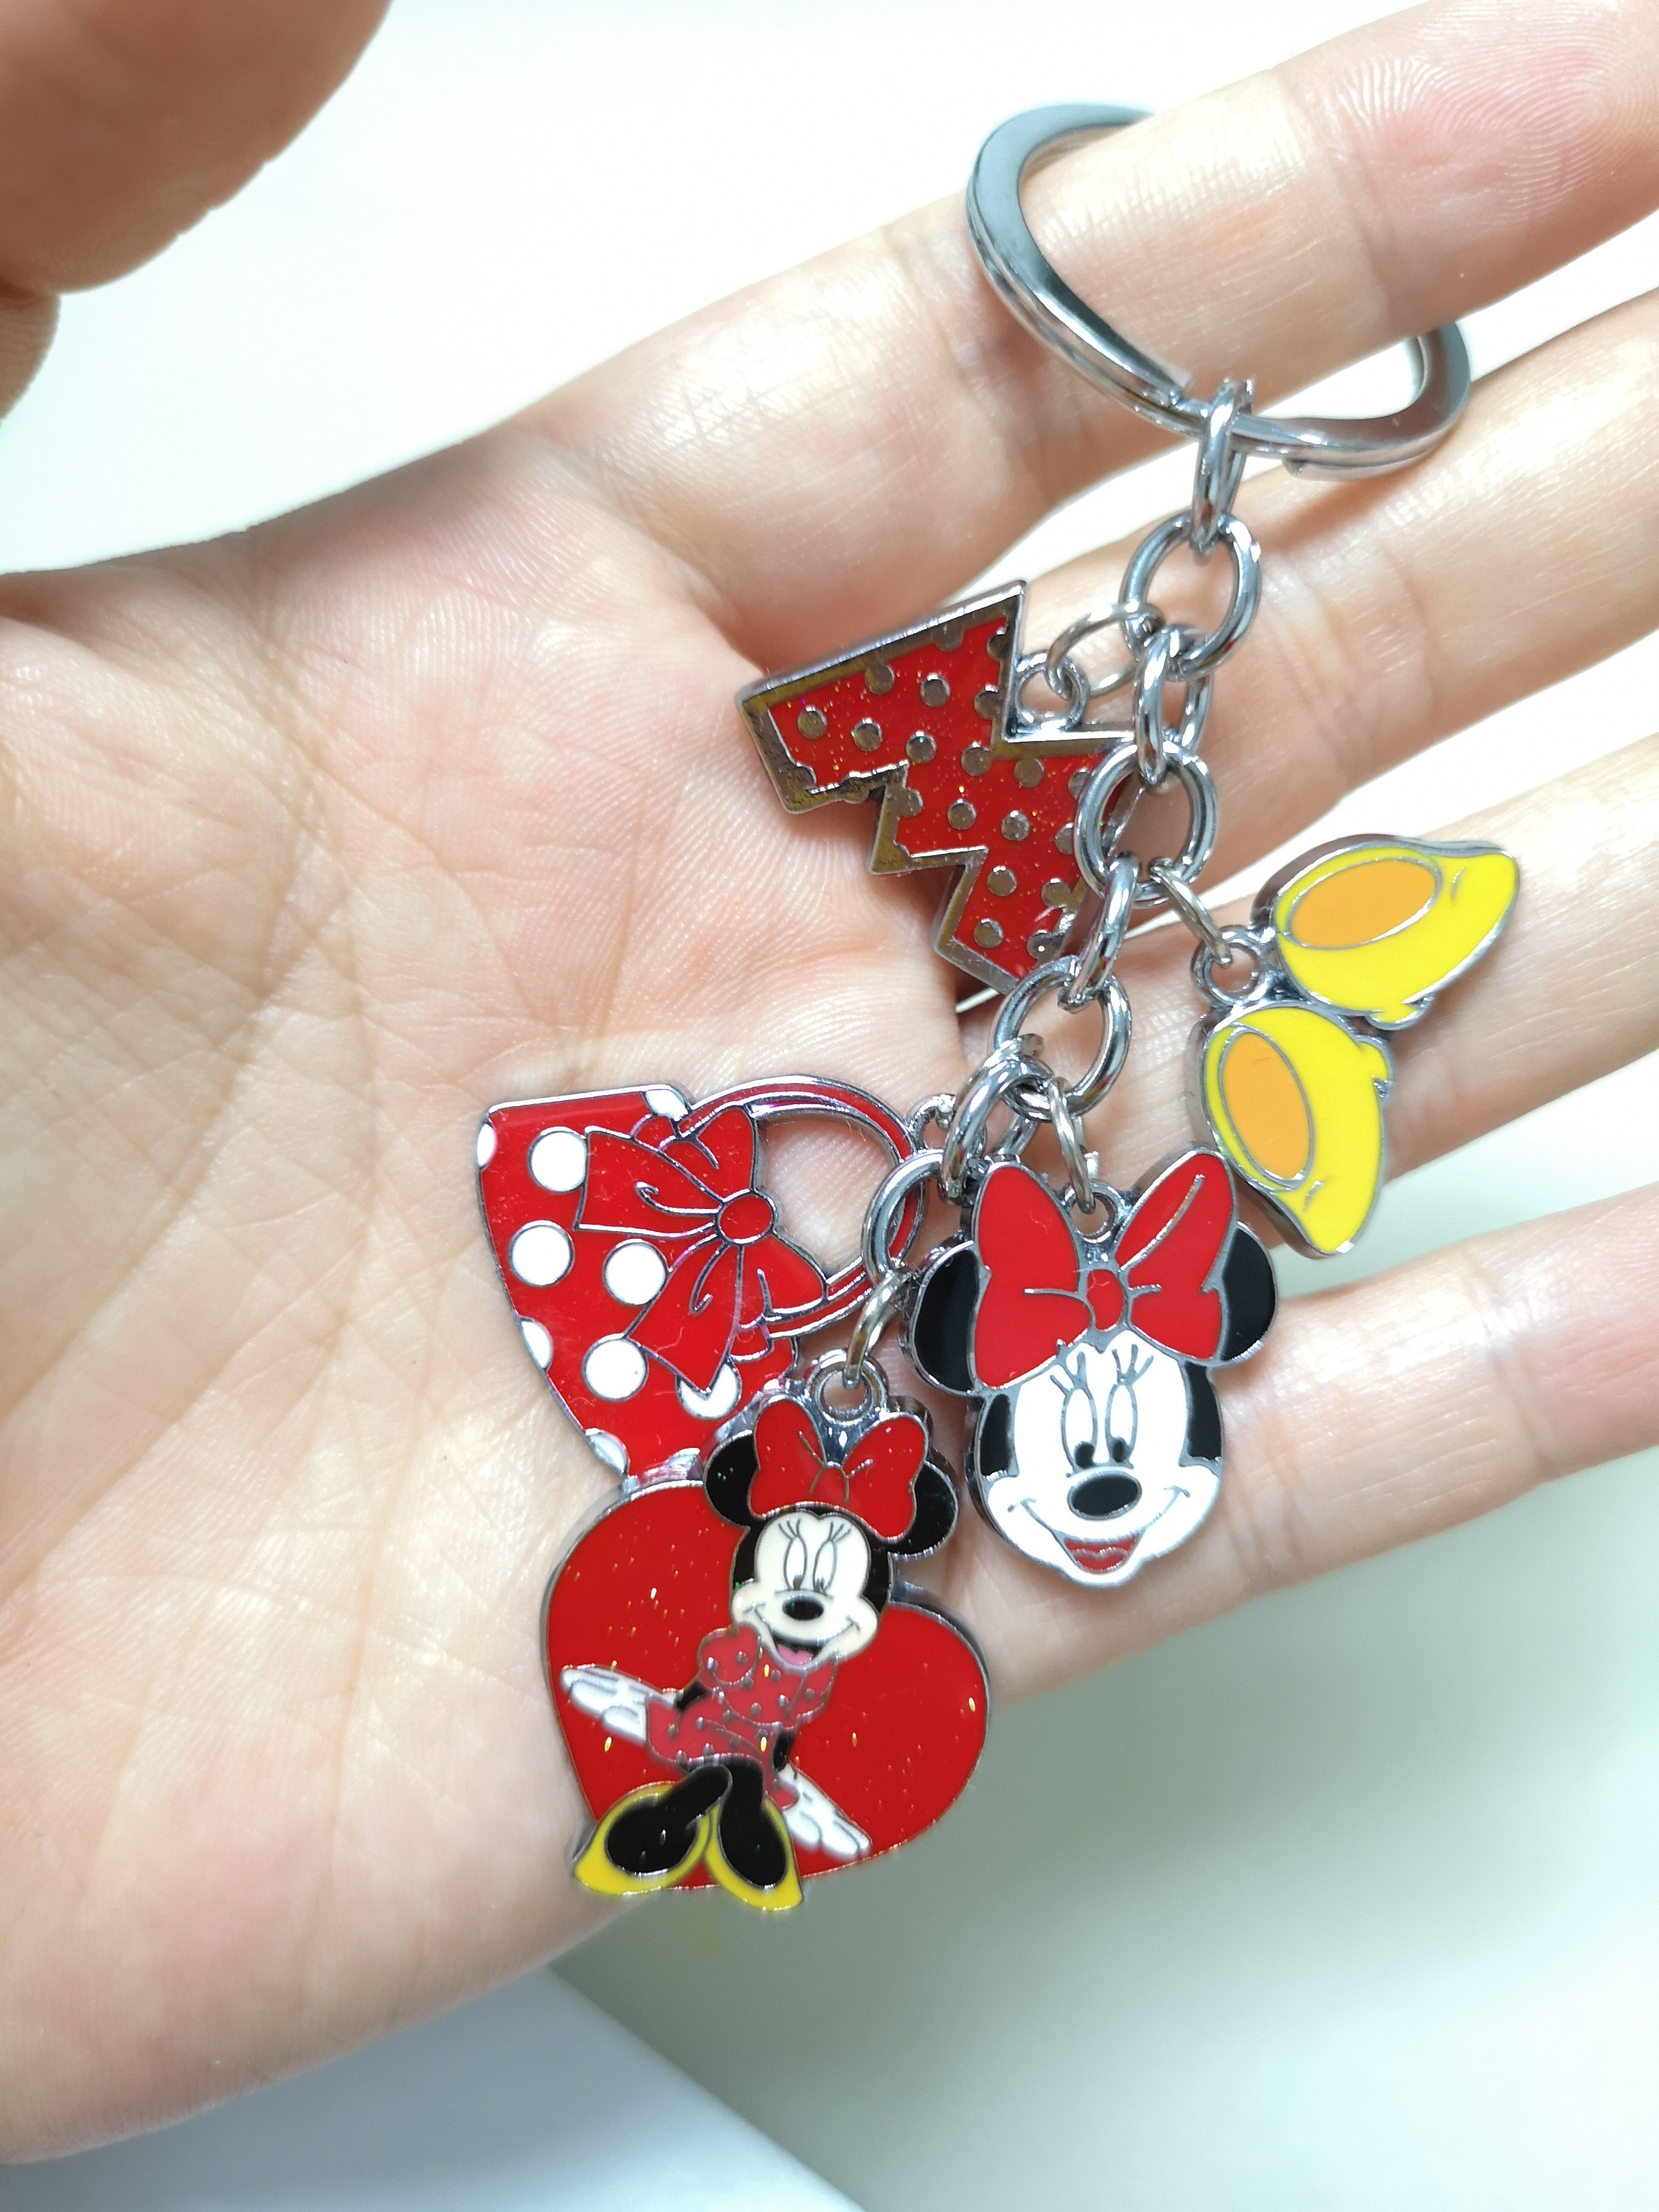 New 1 Set Cartoon Red Love Heart Minnie Head Cute Keychain Jewelry Accessories Key Chains Pendant Gifts Favors